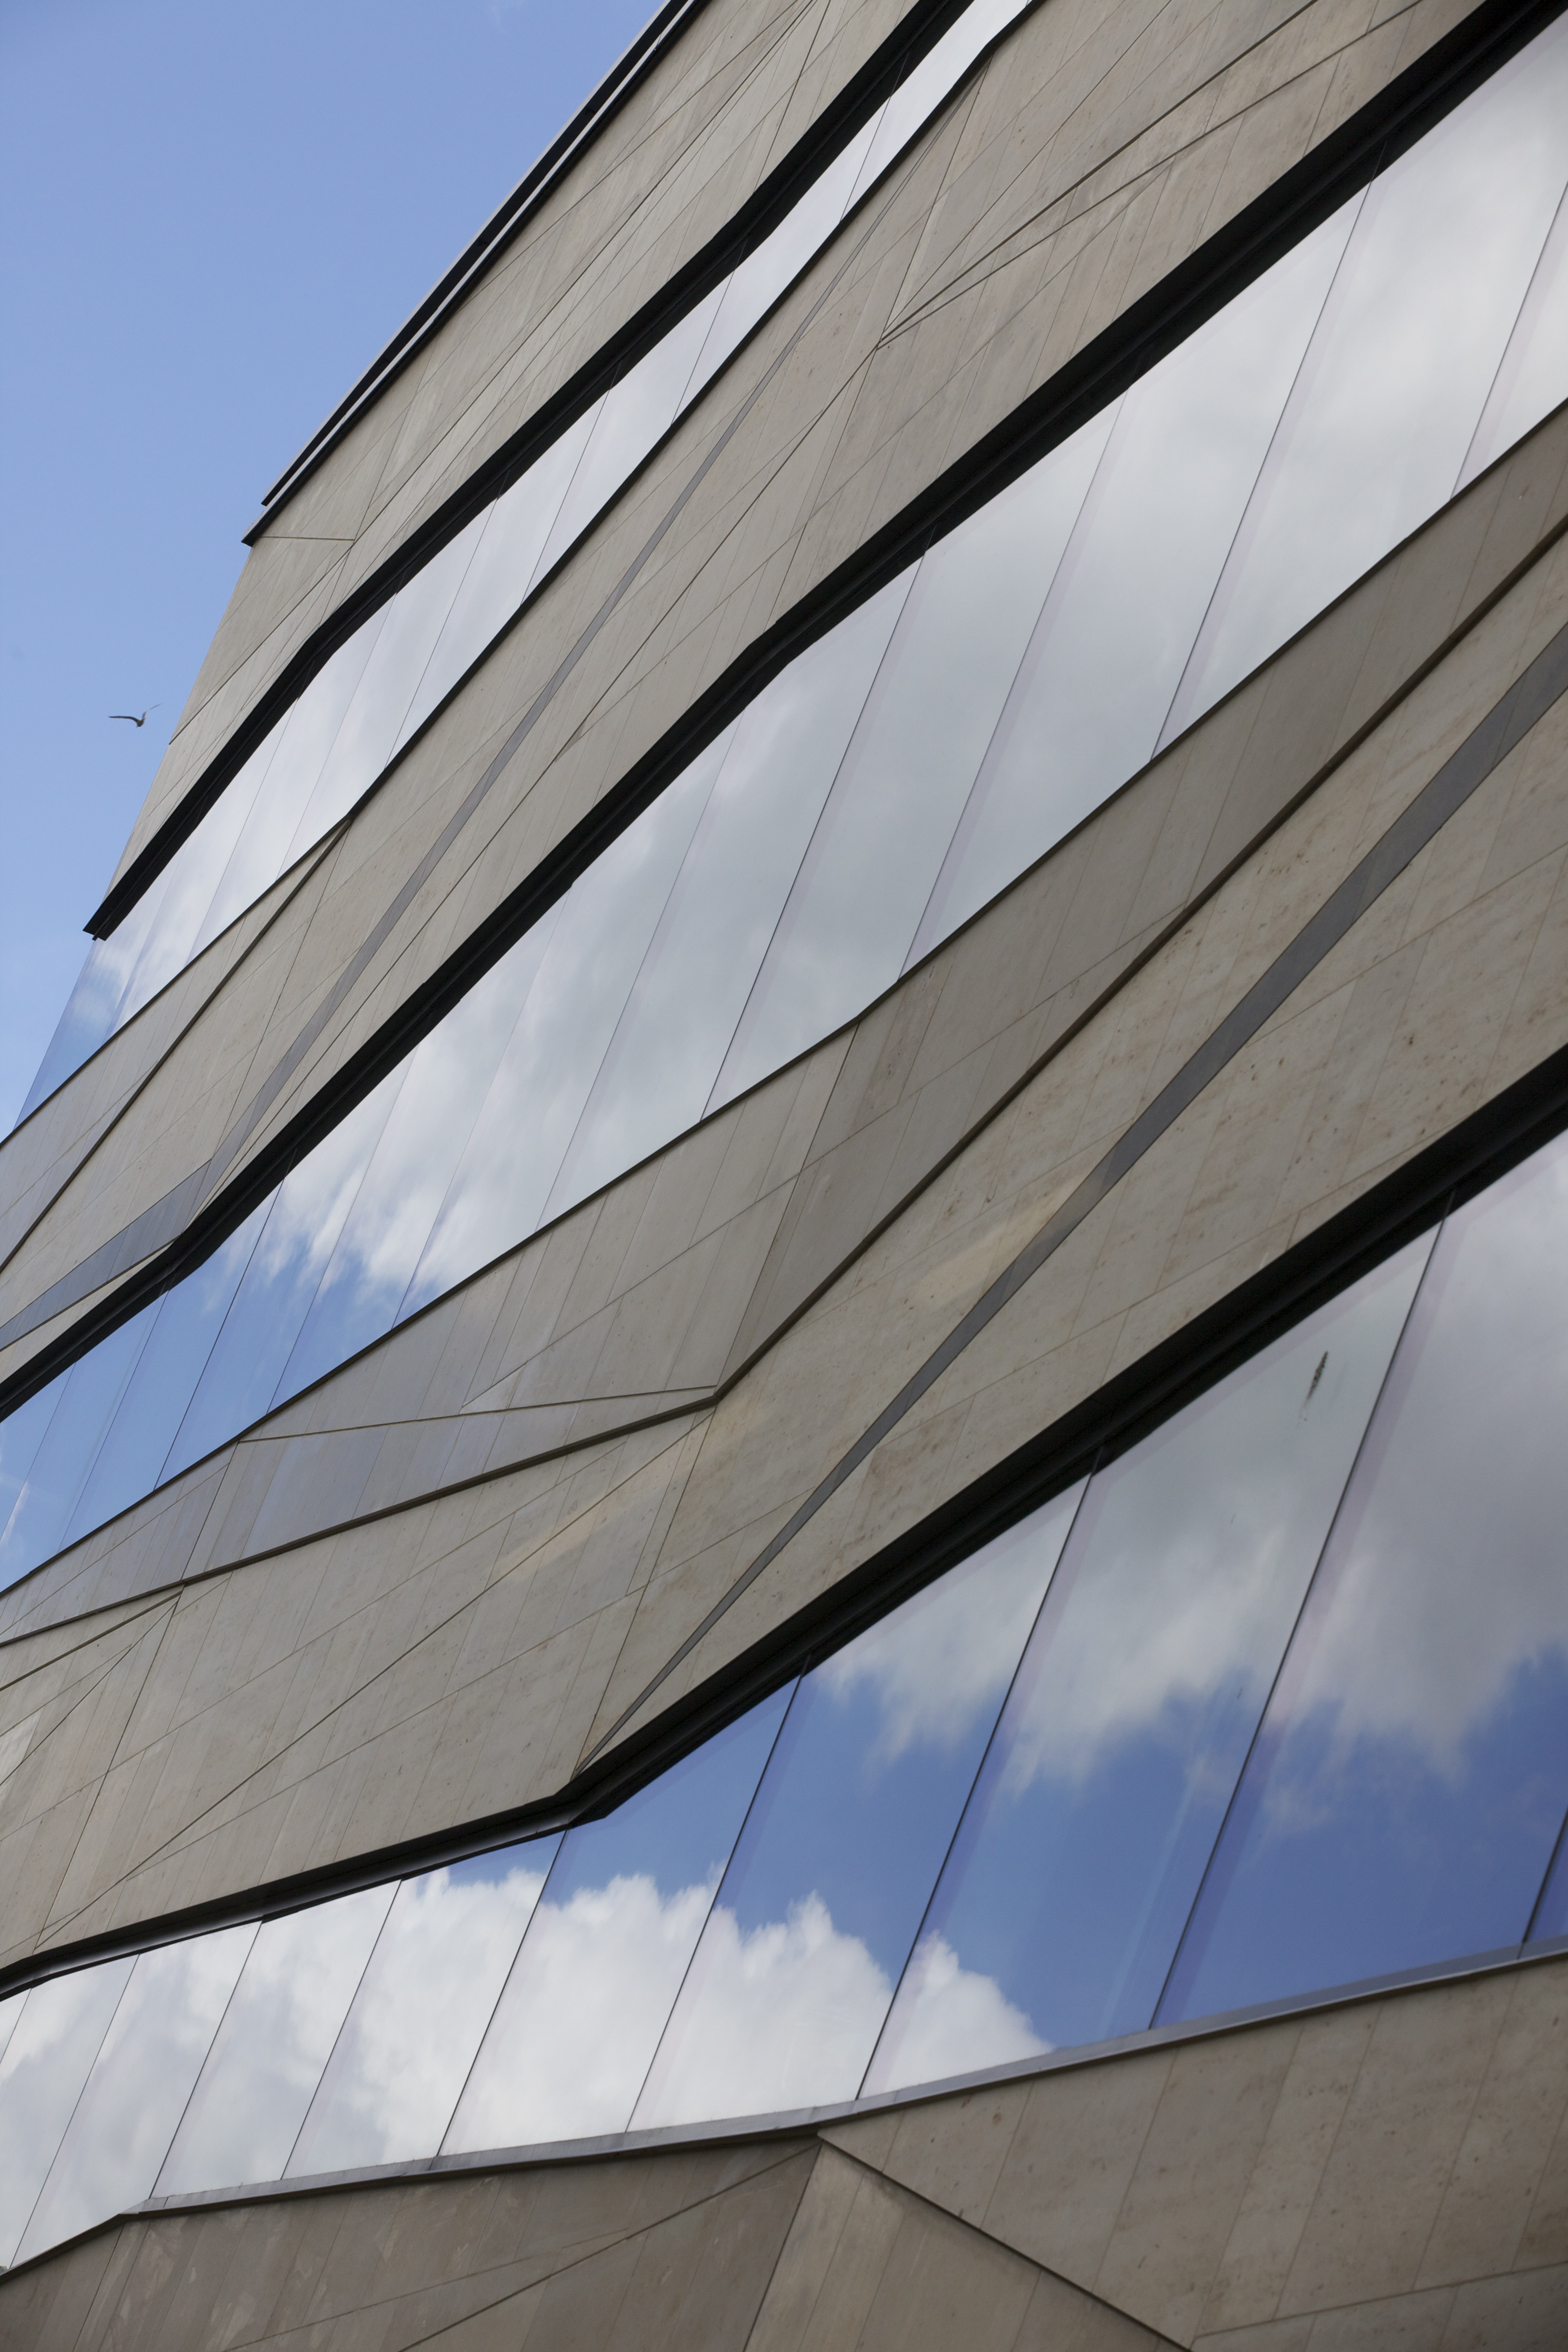 Exterior view of the new Earth Sciences building in Oxford